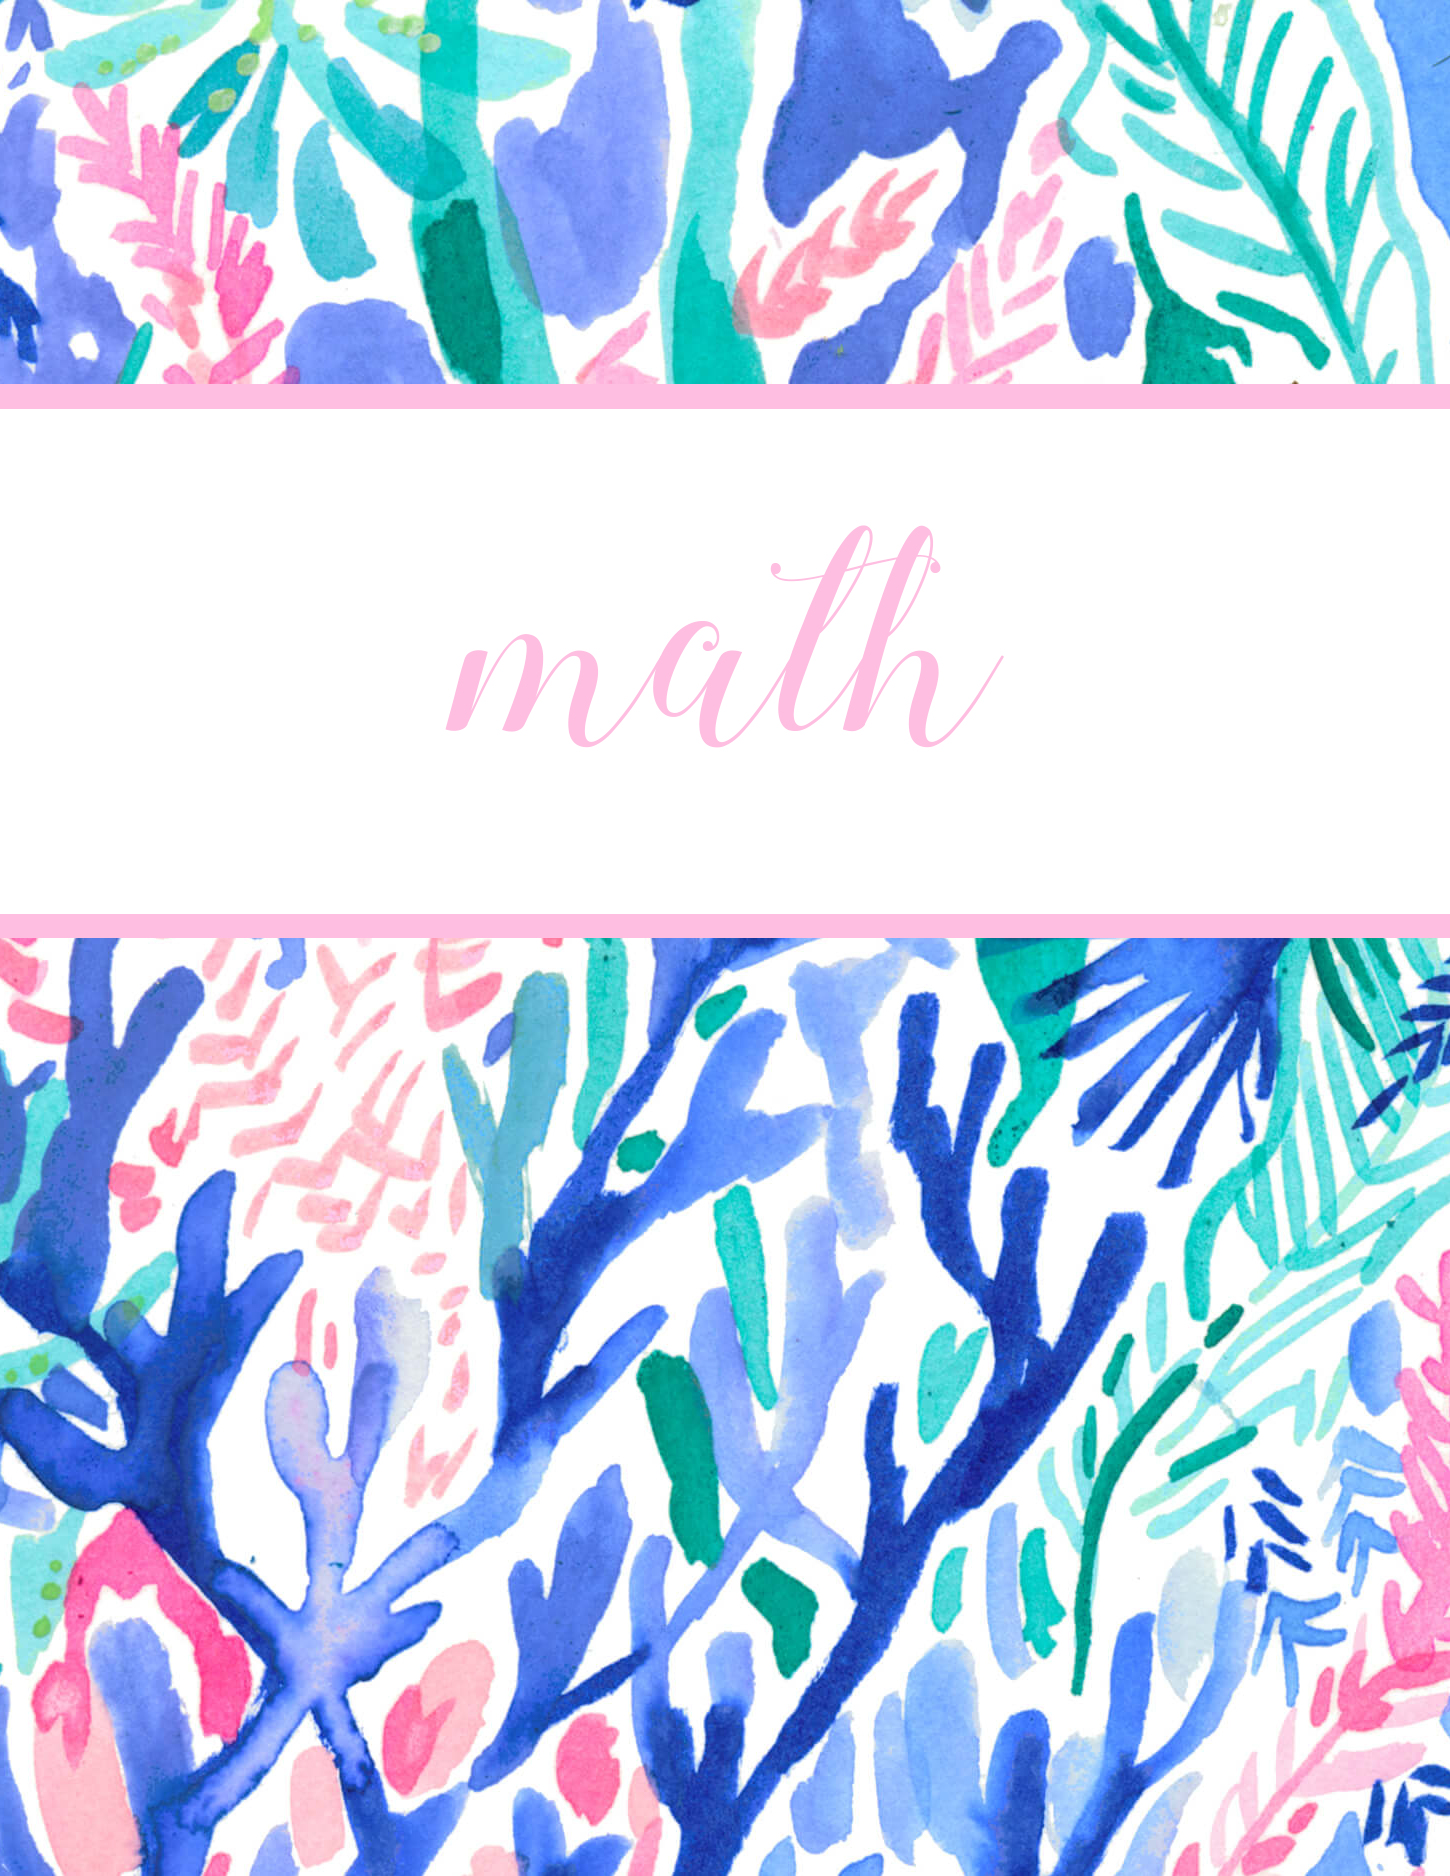 Preppy style blogger Eva Phan of Eva Darling shares her free printable Lilly Pulitzer binder covers to go back to school in style in the print Catch the Wavepy and classic style blogger Eva Phan of Eva Darling shares free printable Lilly Pulitzer binder covers for back to school cute school supplies college high school jet stream print sea life watercolor art aquatic download organization dividers math subject